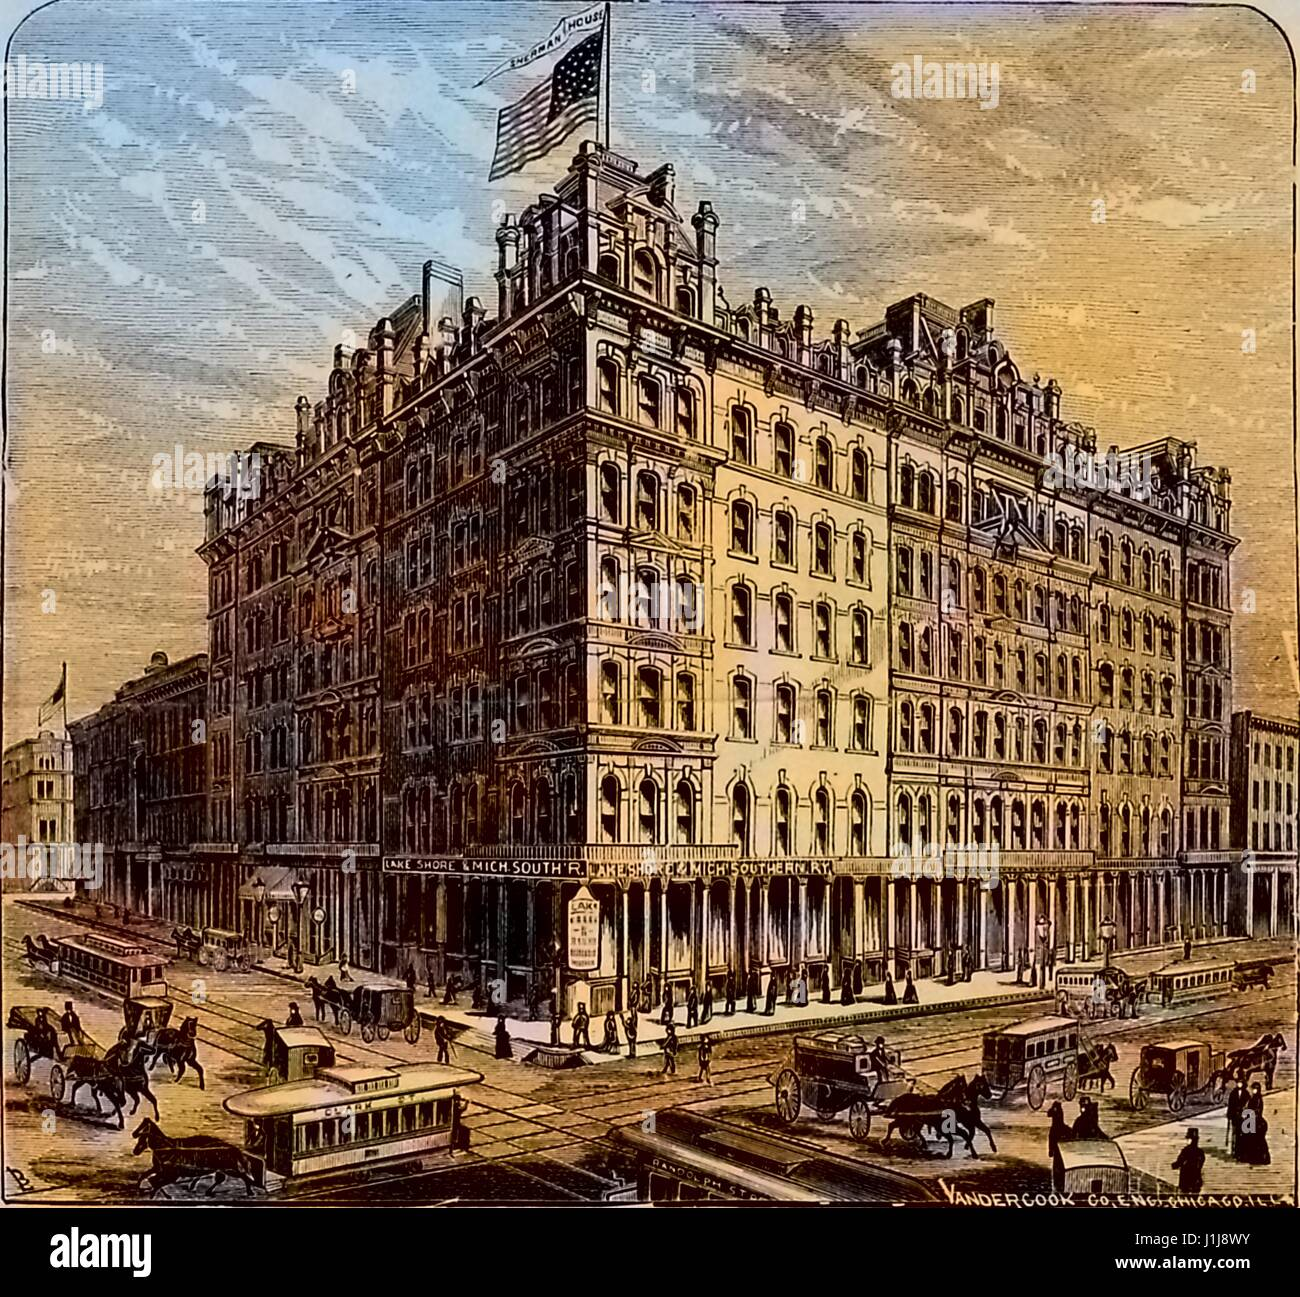 Illustration from an advertisement for the Sherman House Hotel, Chicago, Illinois, 1879. Note: Image has been digitally - Stock Image